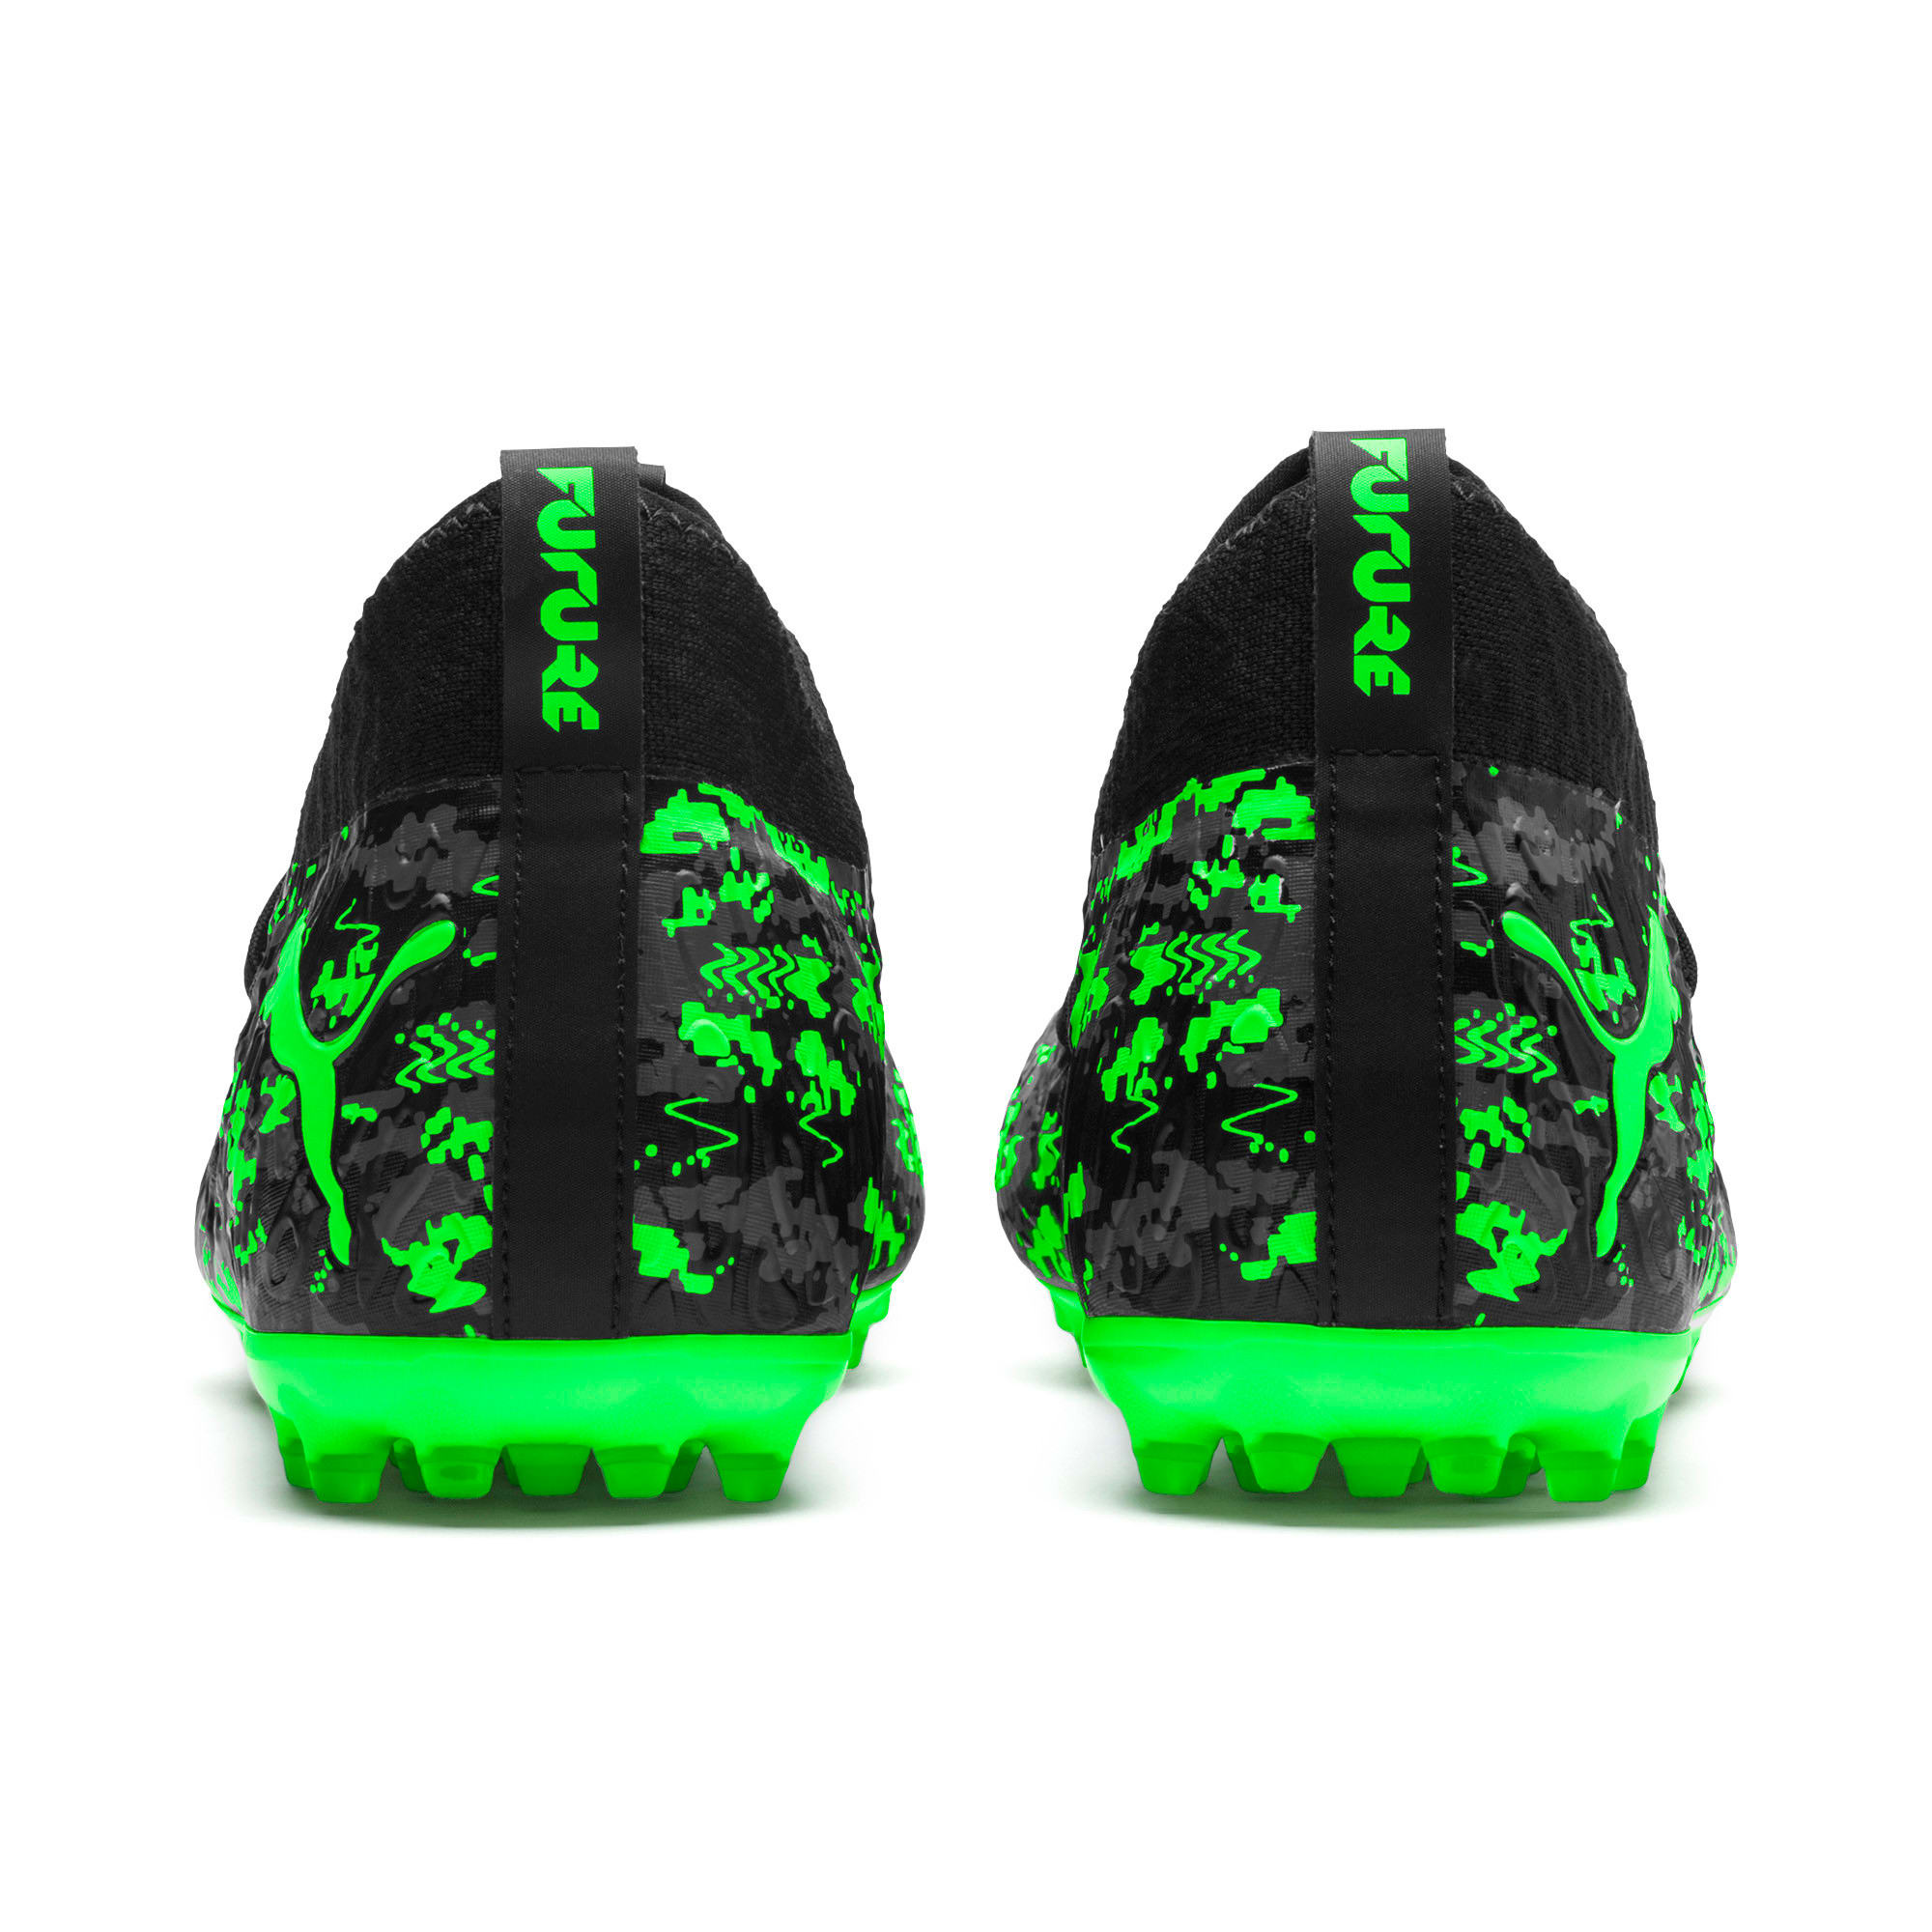 FUTURE 19.3 NETFIT MG Men's Football Boots, Black-Gray-Green Gecko, large